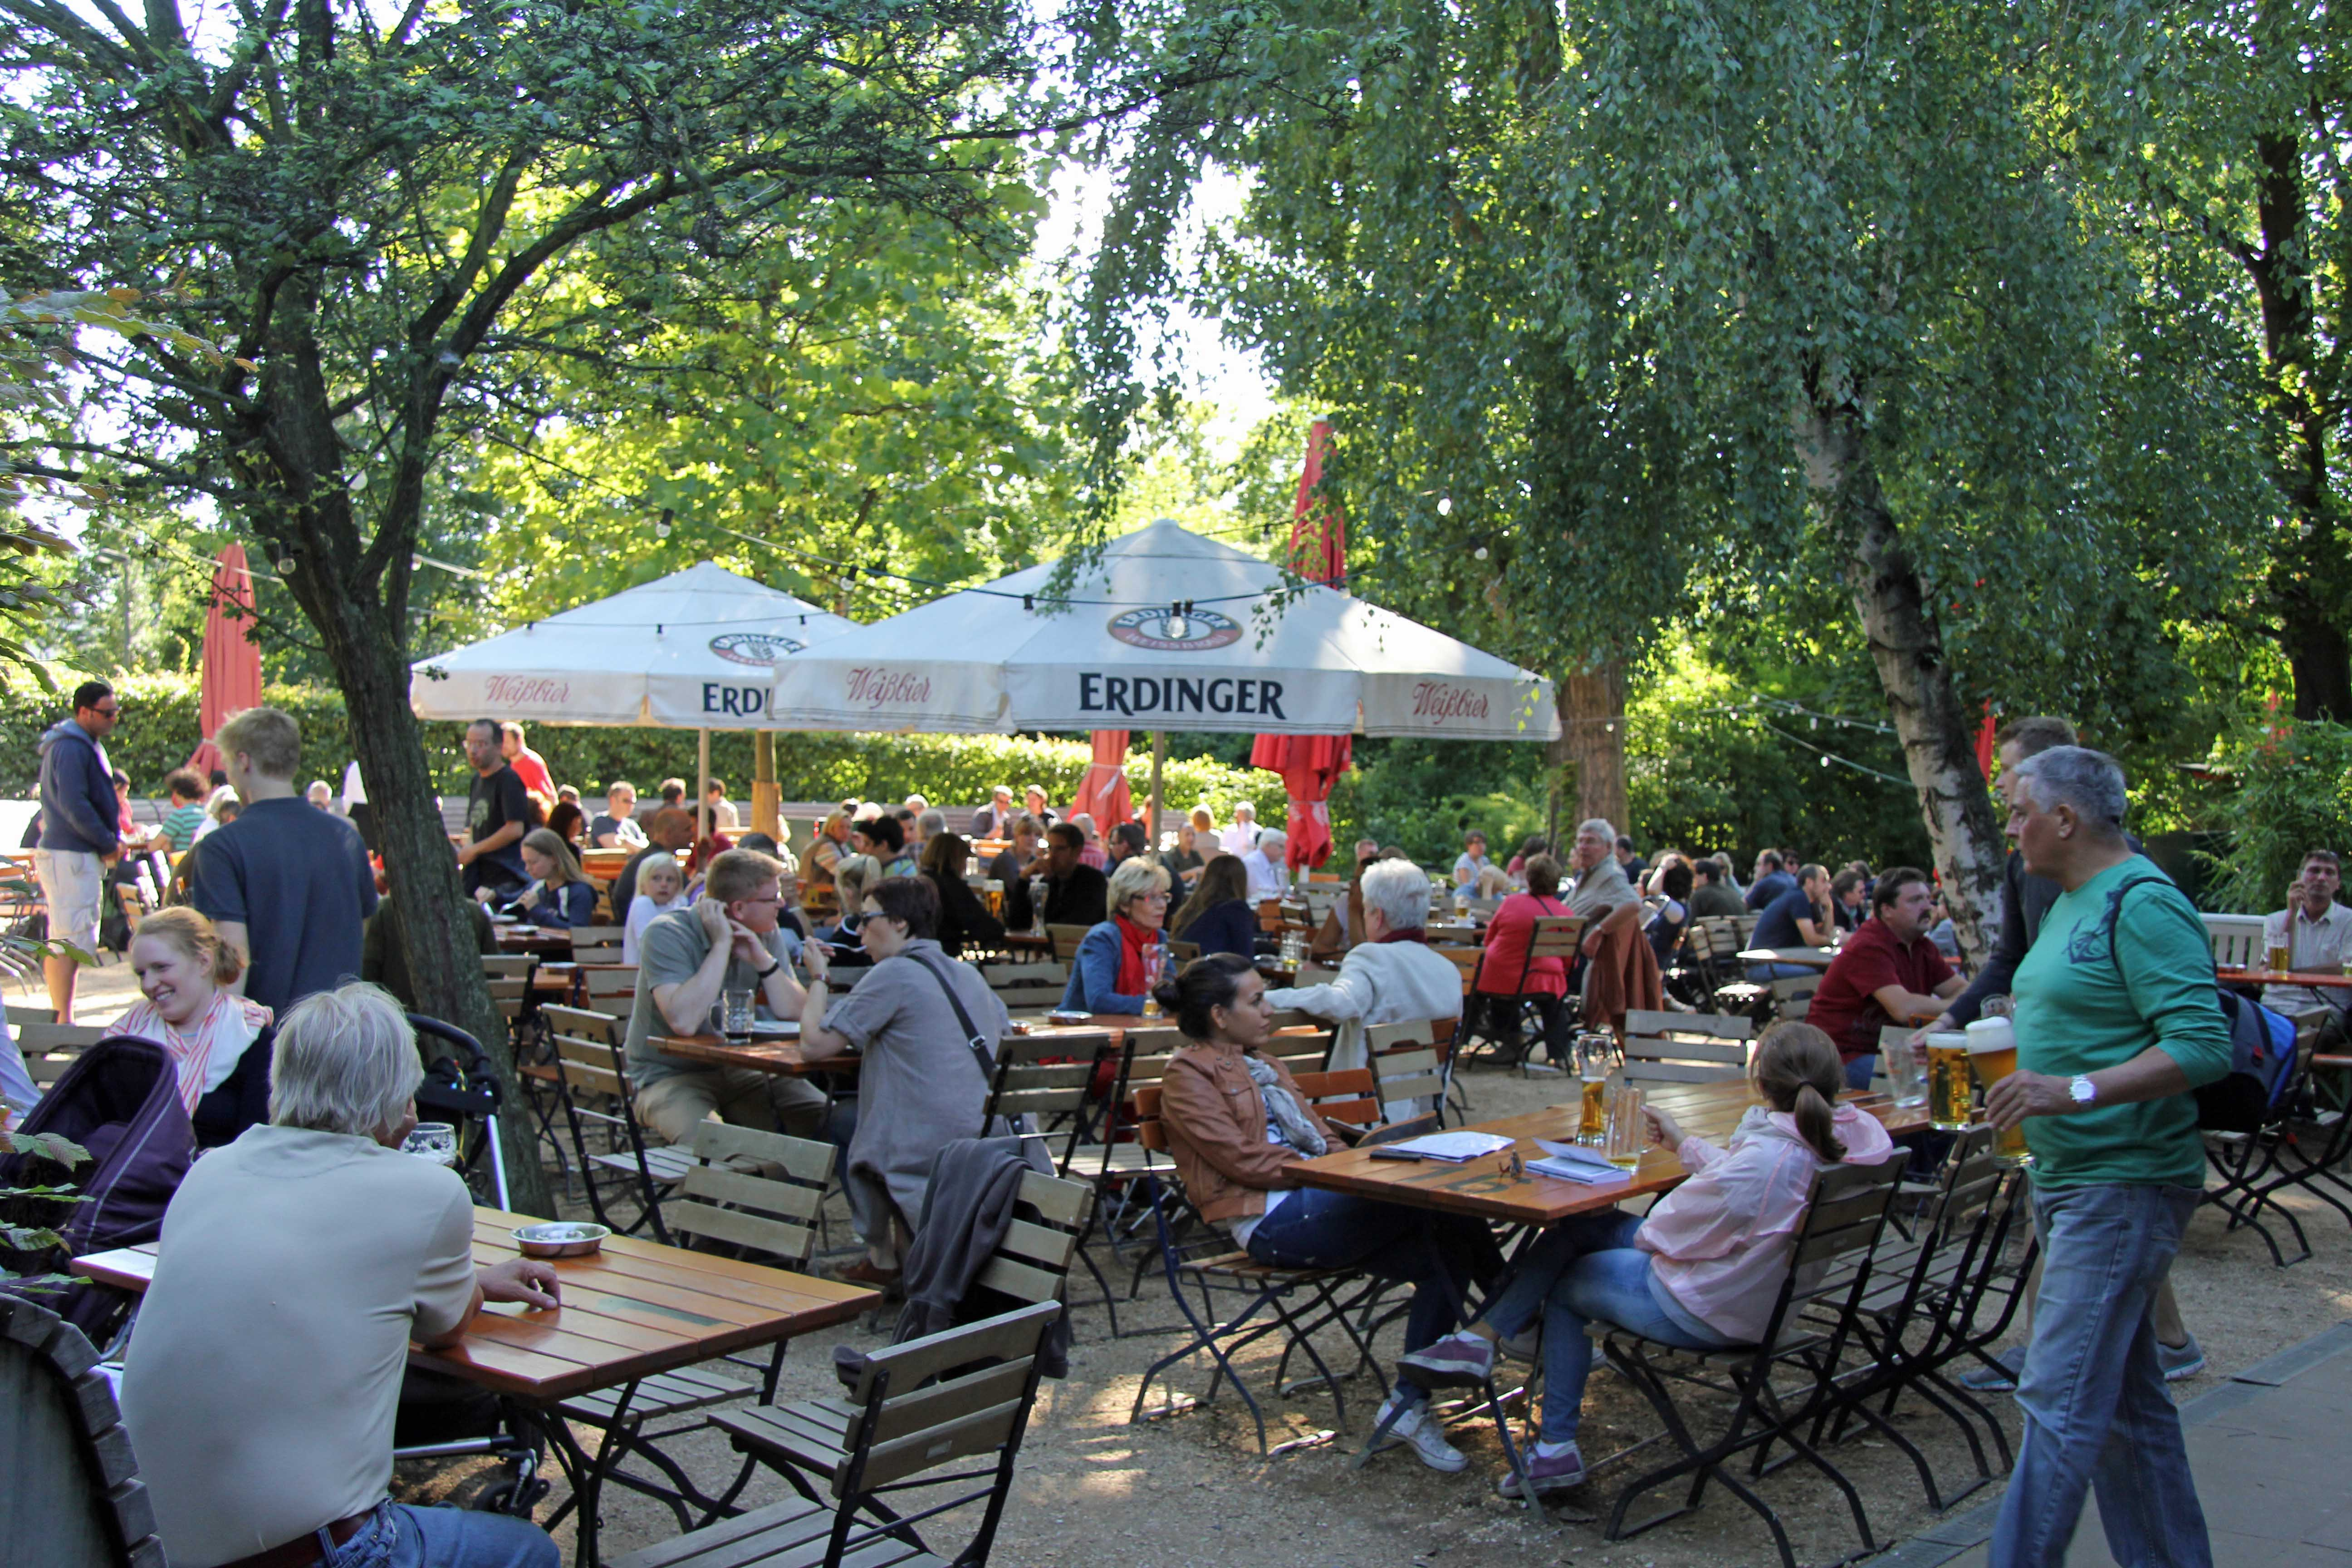 The Biergarten at Schleusenkrug in the Tiergarten in Berlin